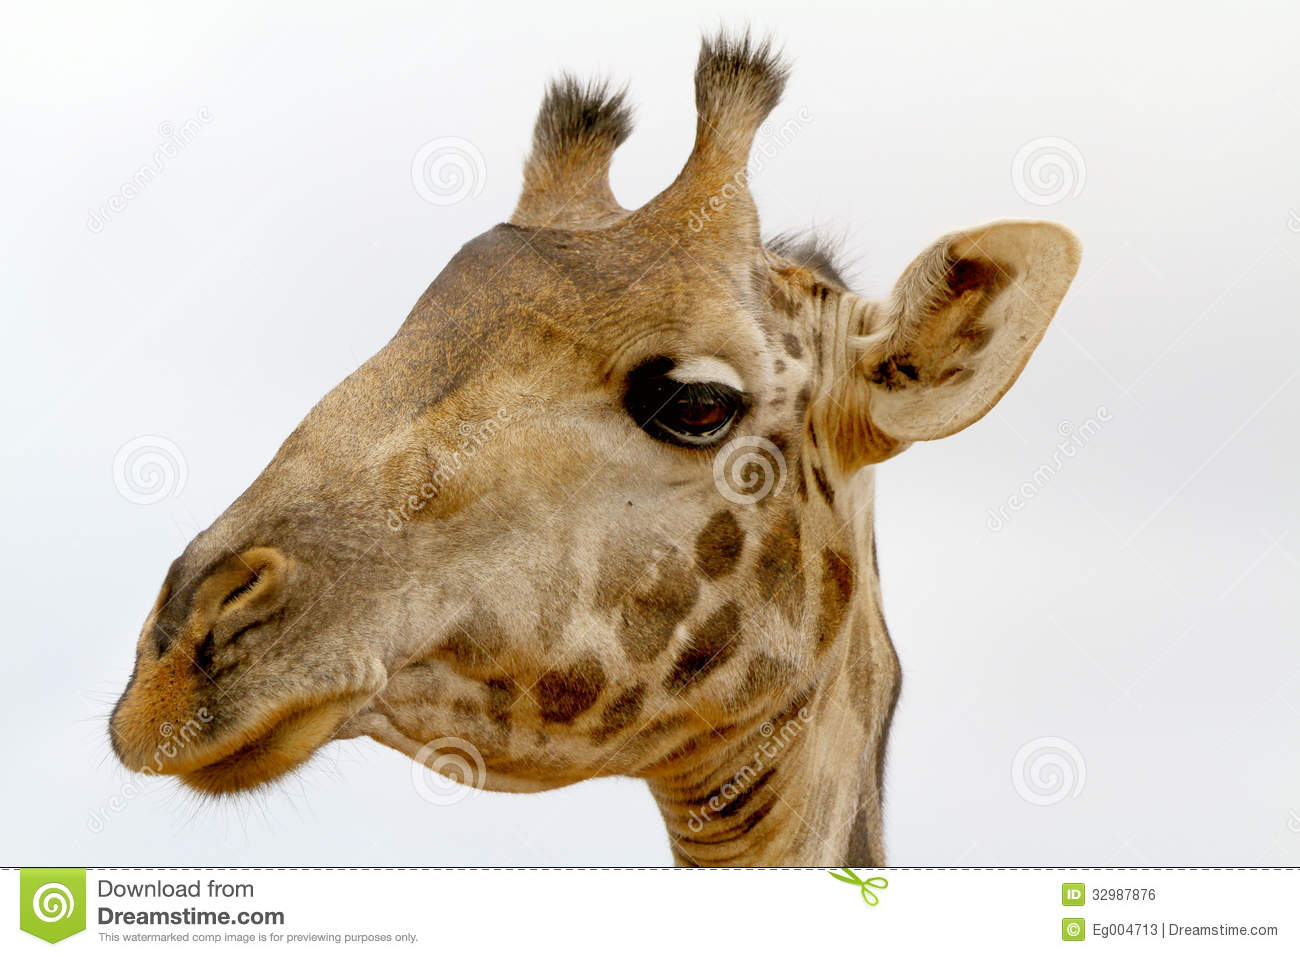 Giraffe head close up - photo#19